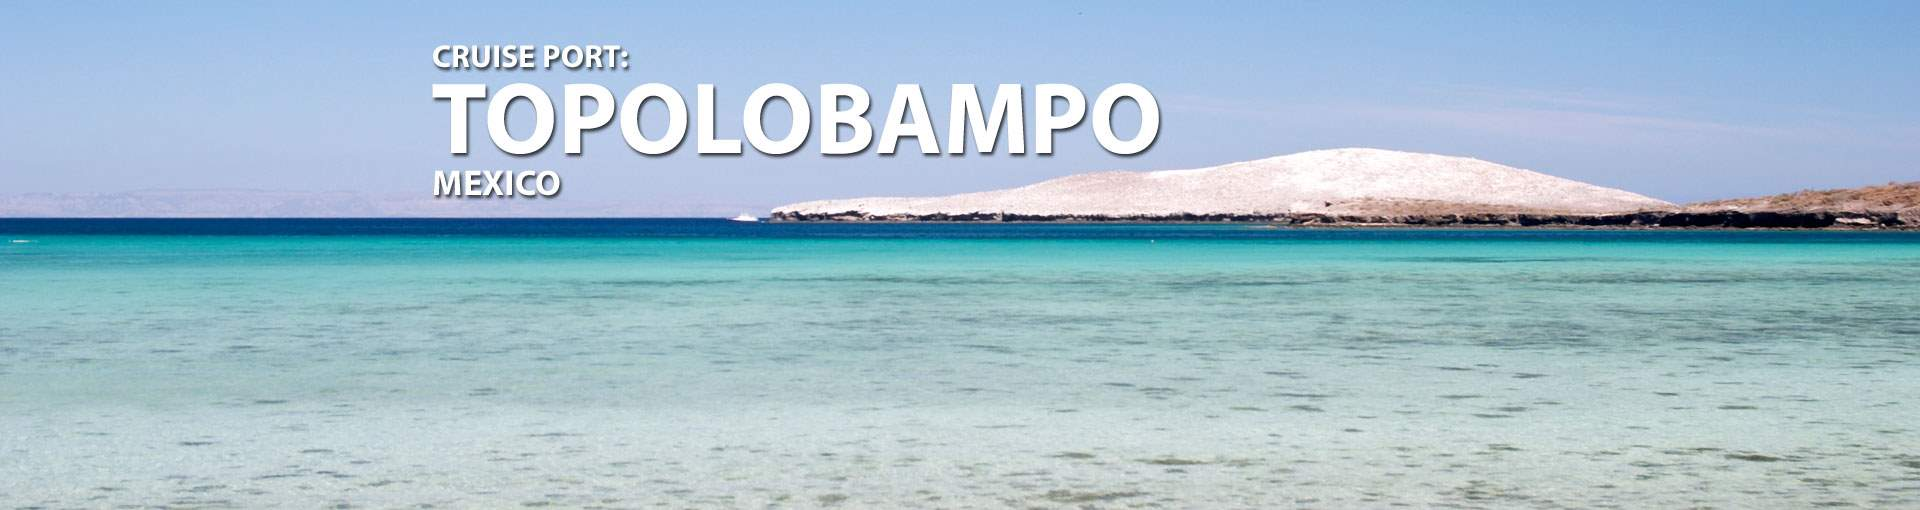 Cruises to Topolobampo, Mexico